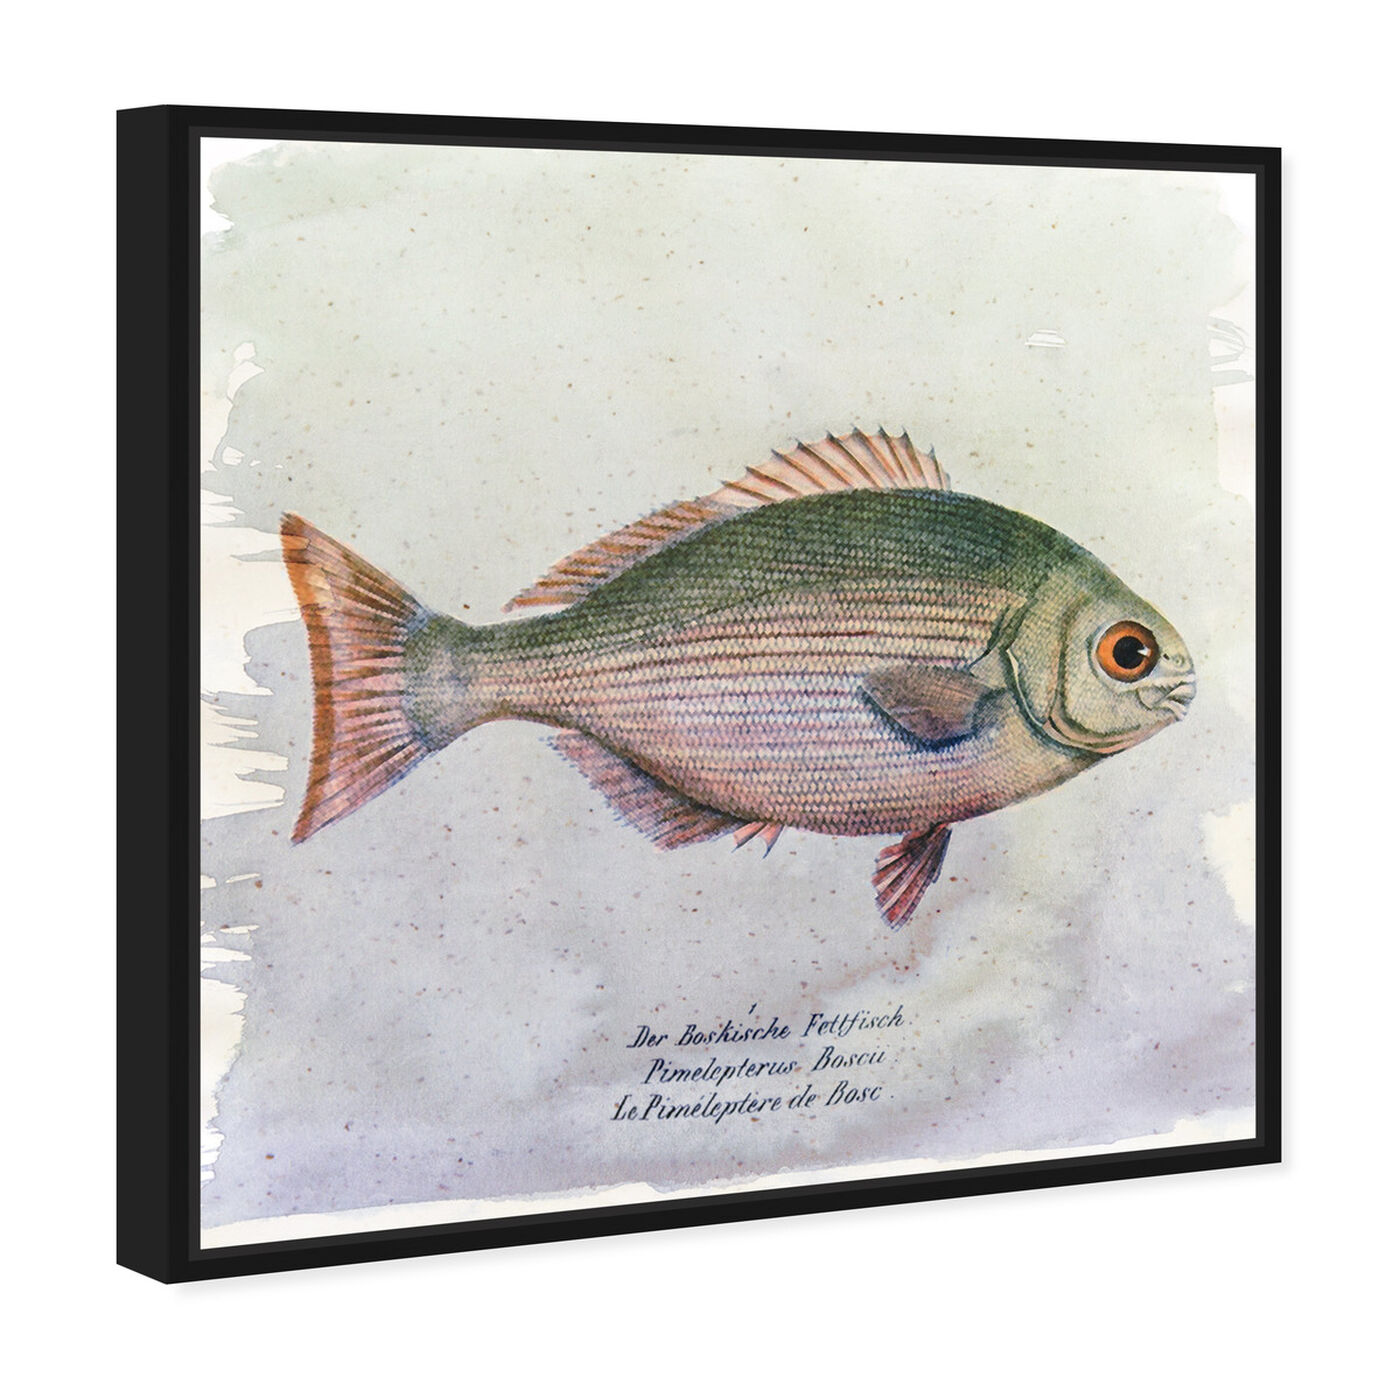 Angled view of Bosc Fish featuring animals and sea animals art.